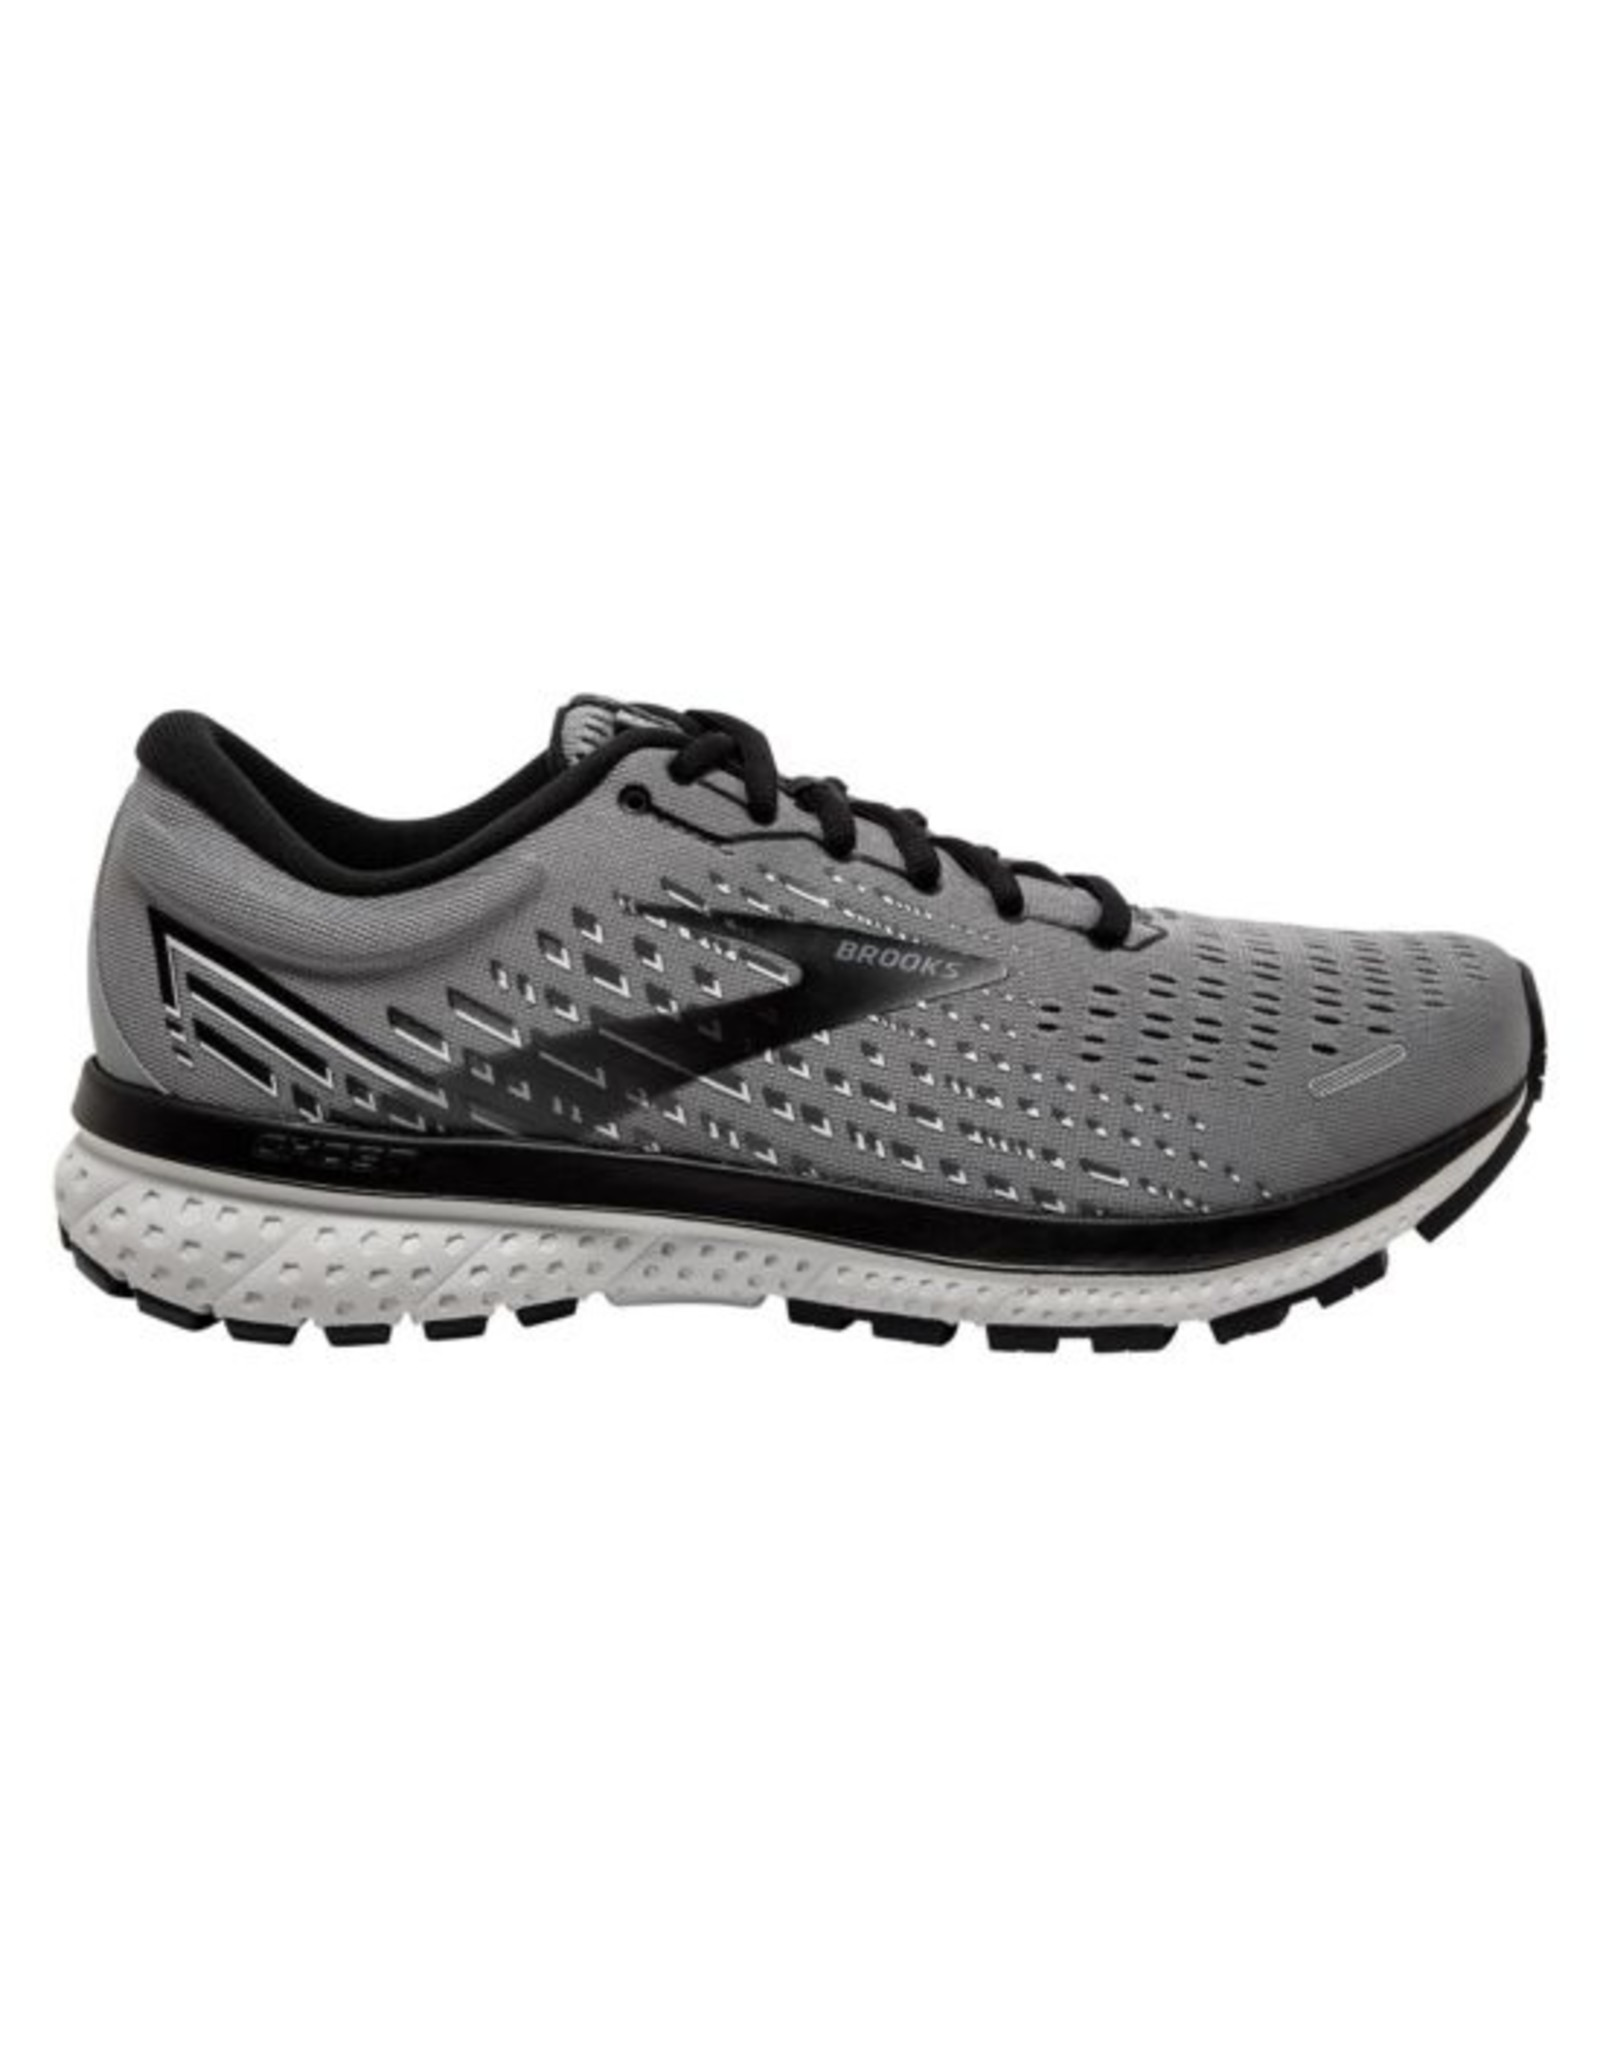 Brooks - M's - Ghost 13 -